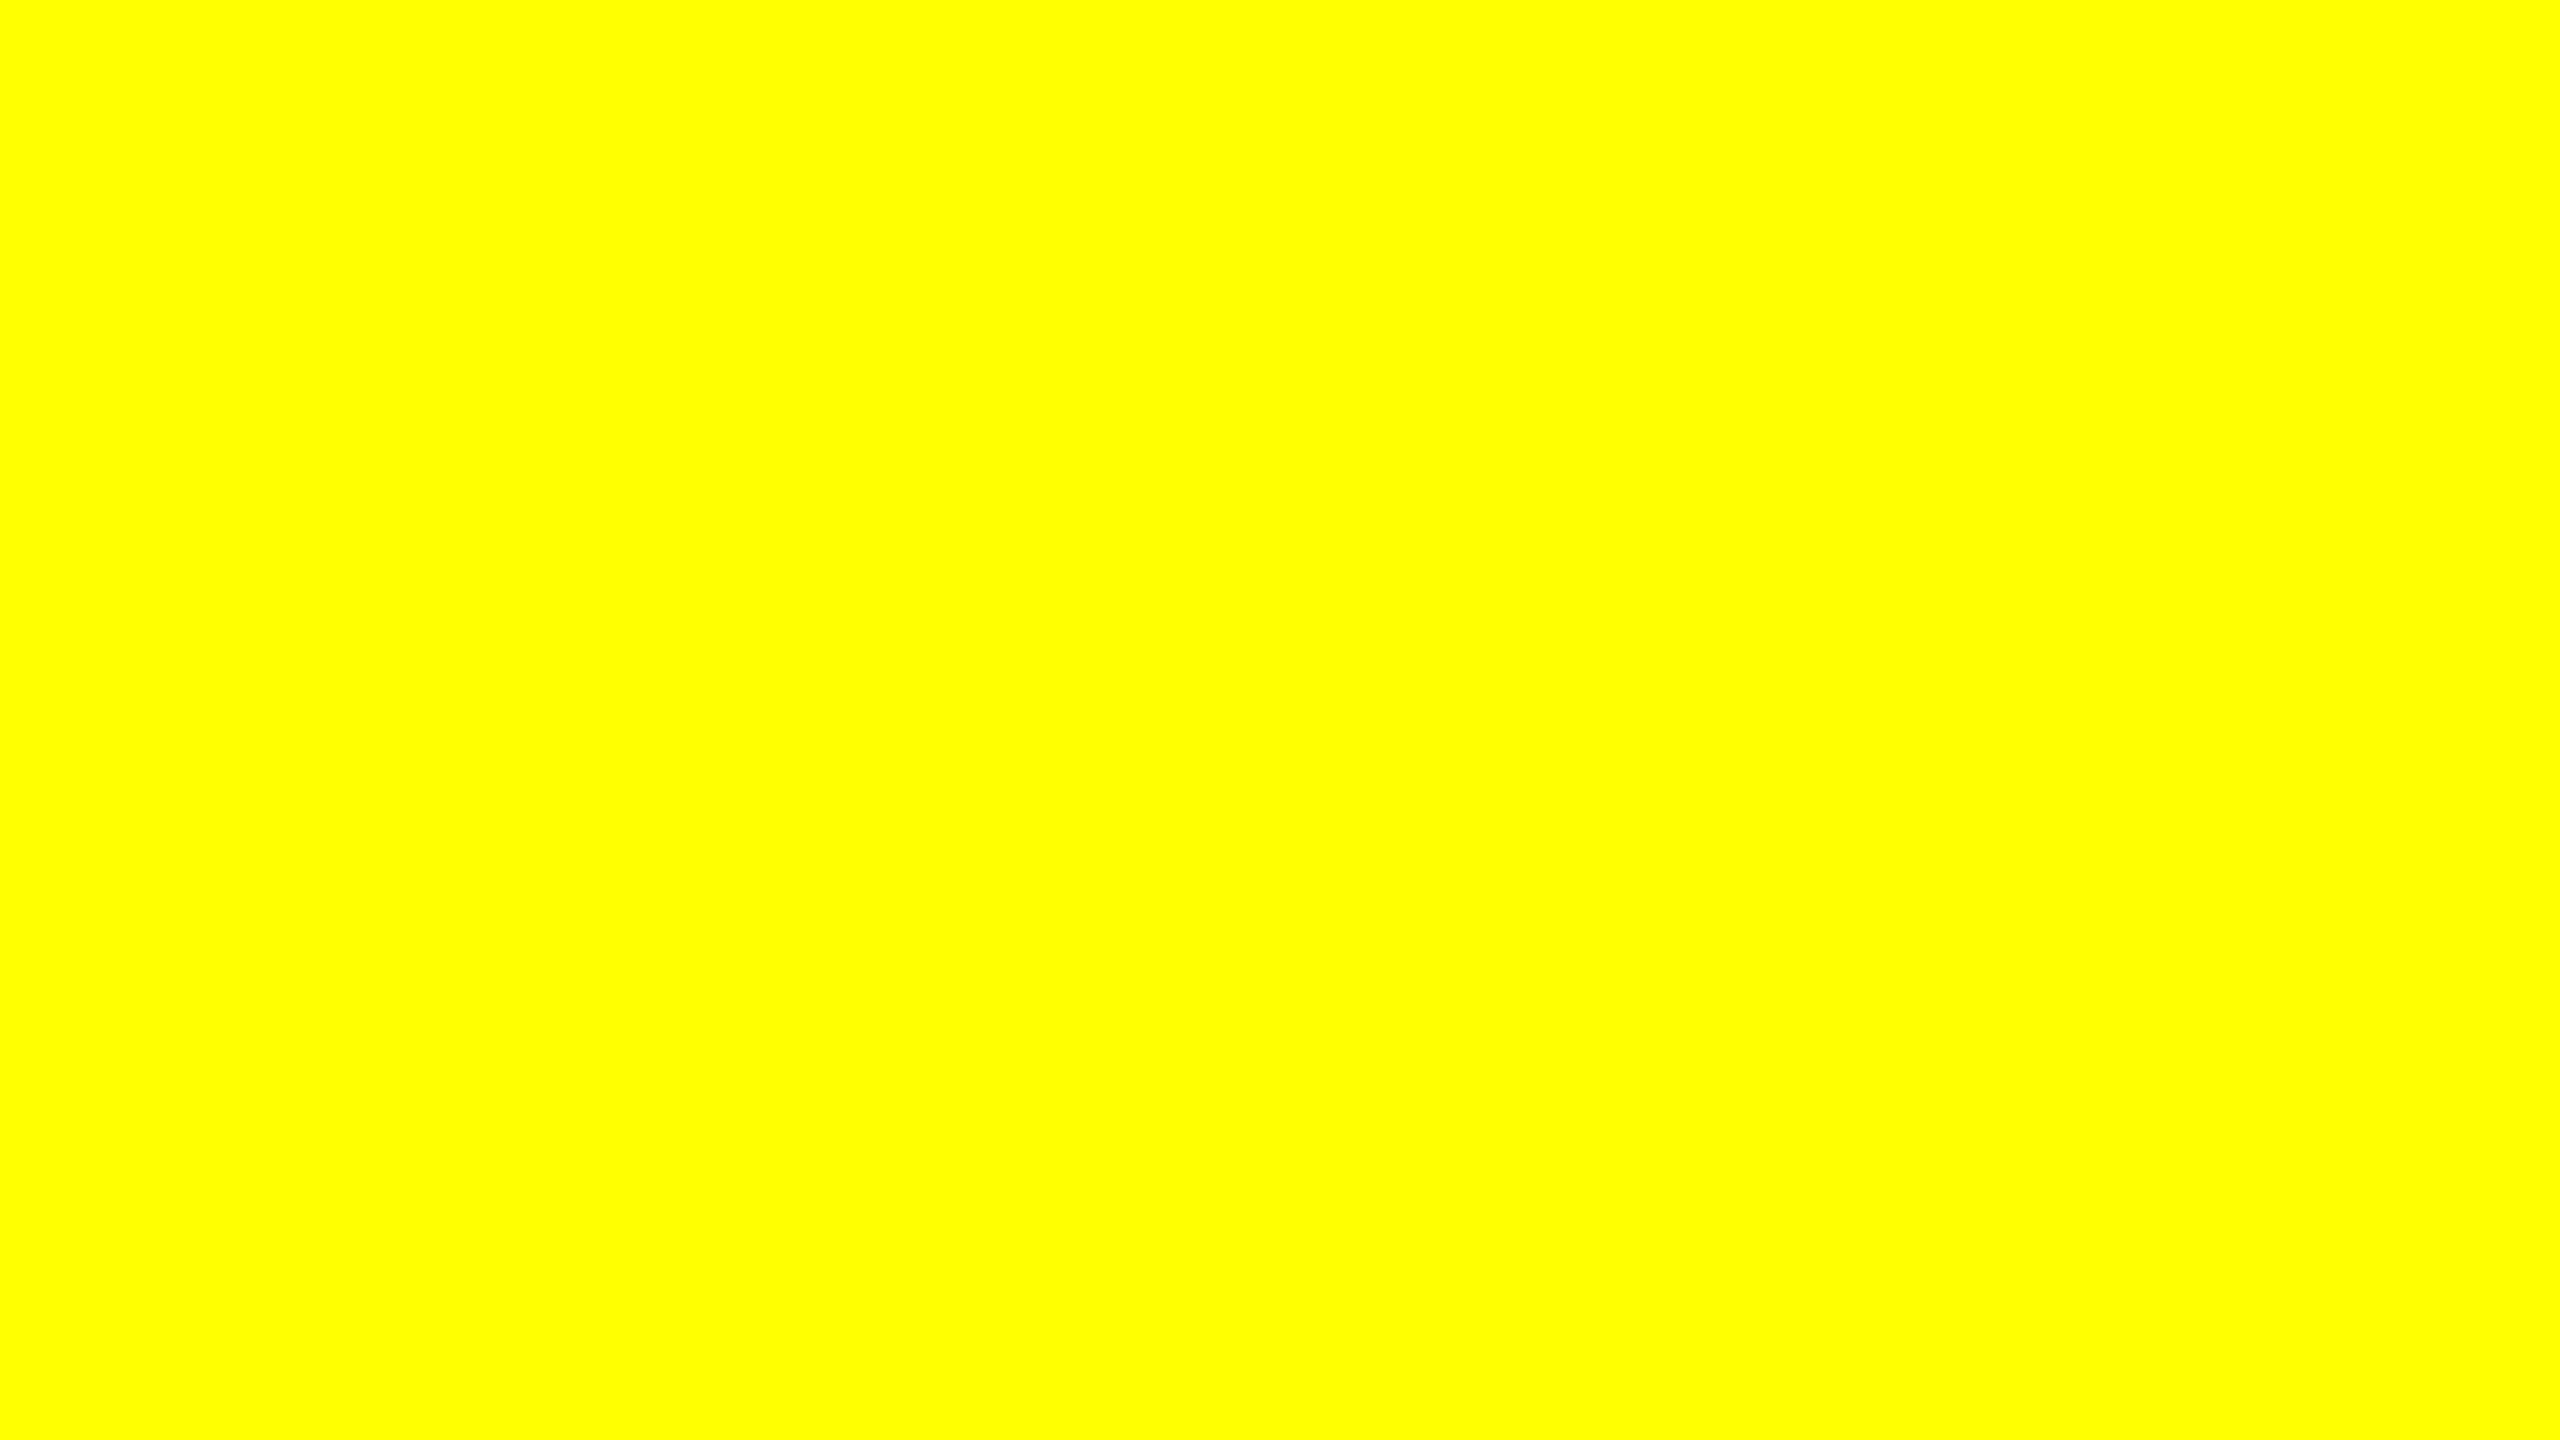 2560x1440 Yellow Solid Color Background